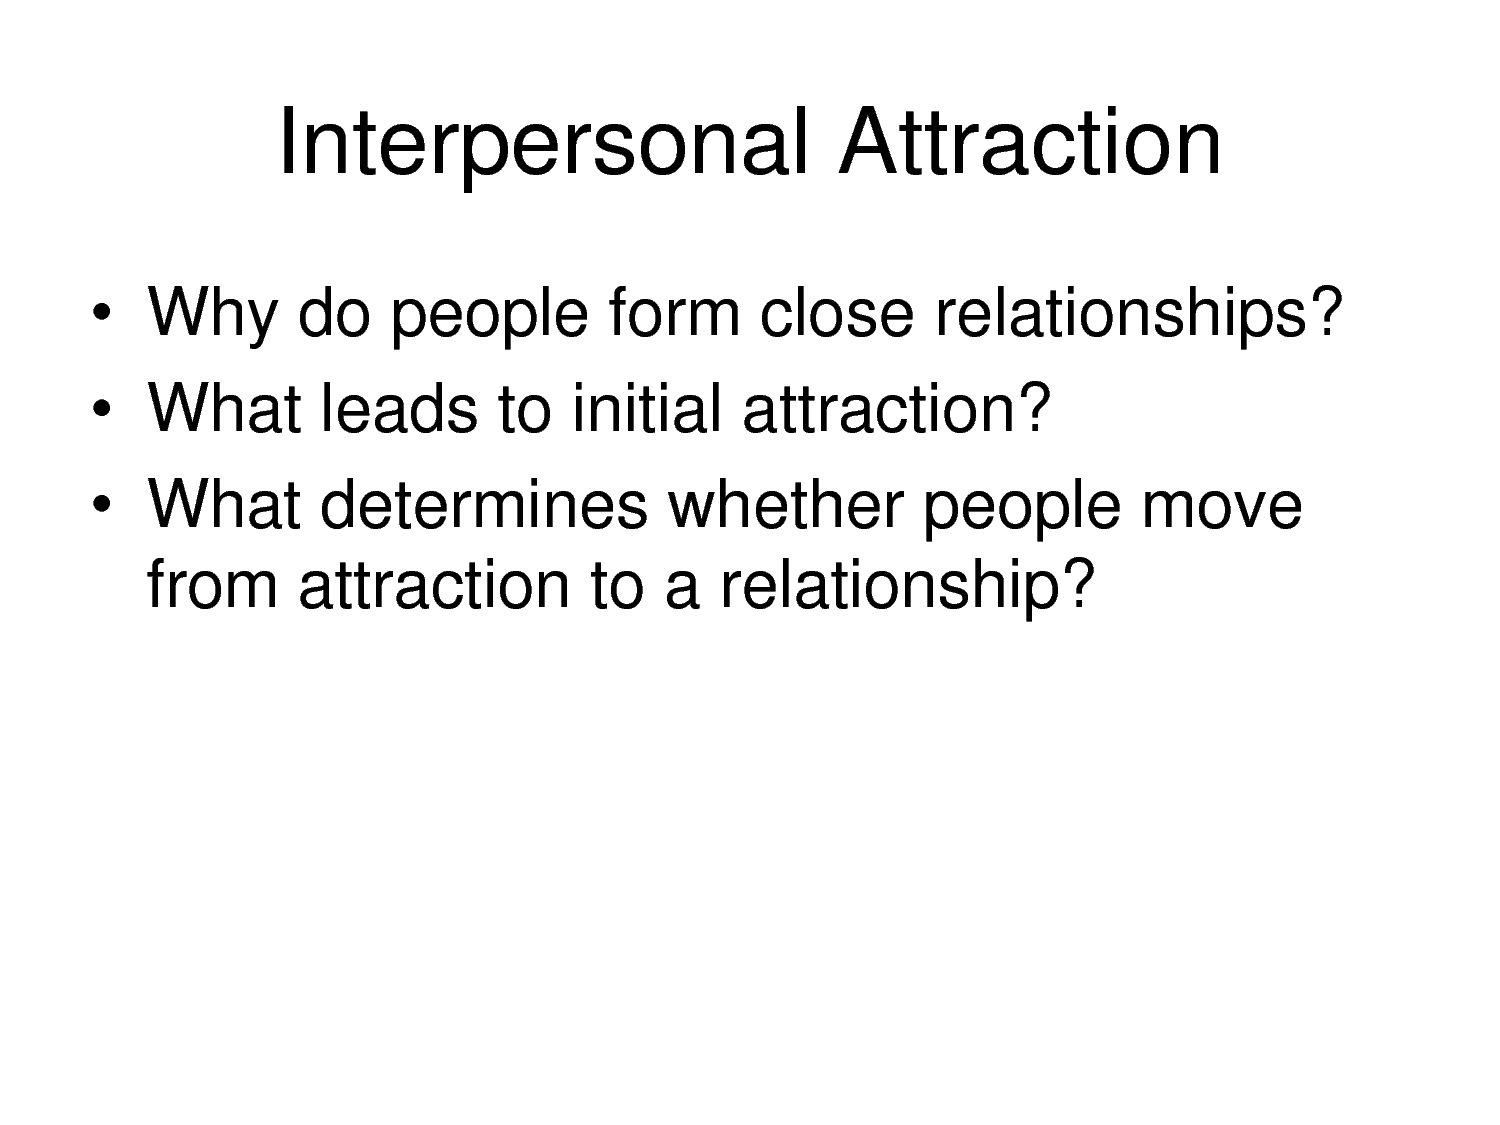 best images about interpersonal attraction 17 best images about interpersonal attraction friendship clever design and studying